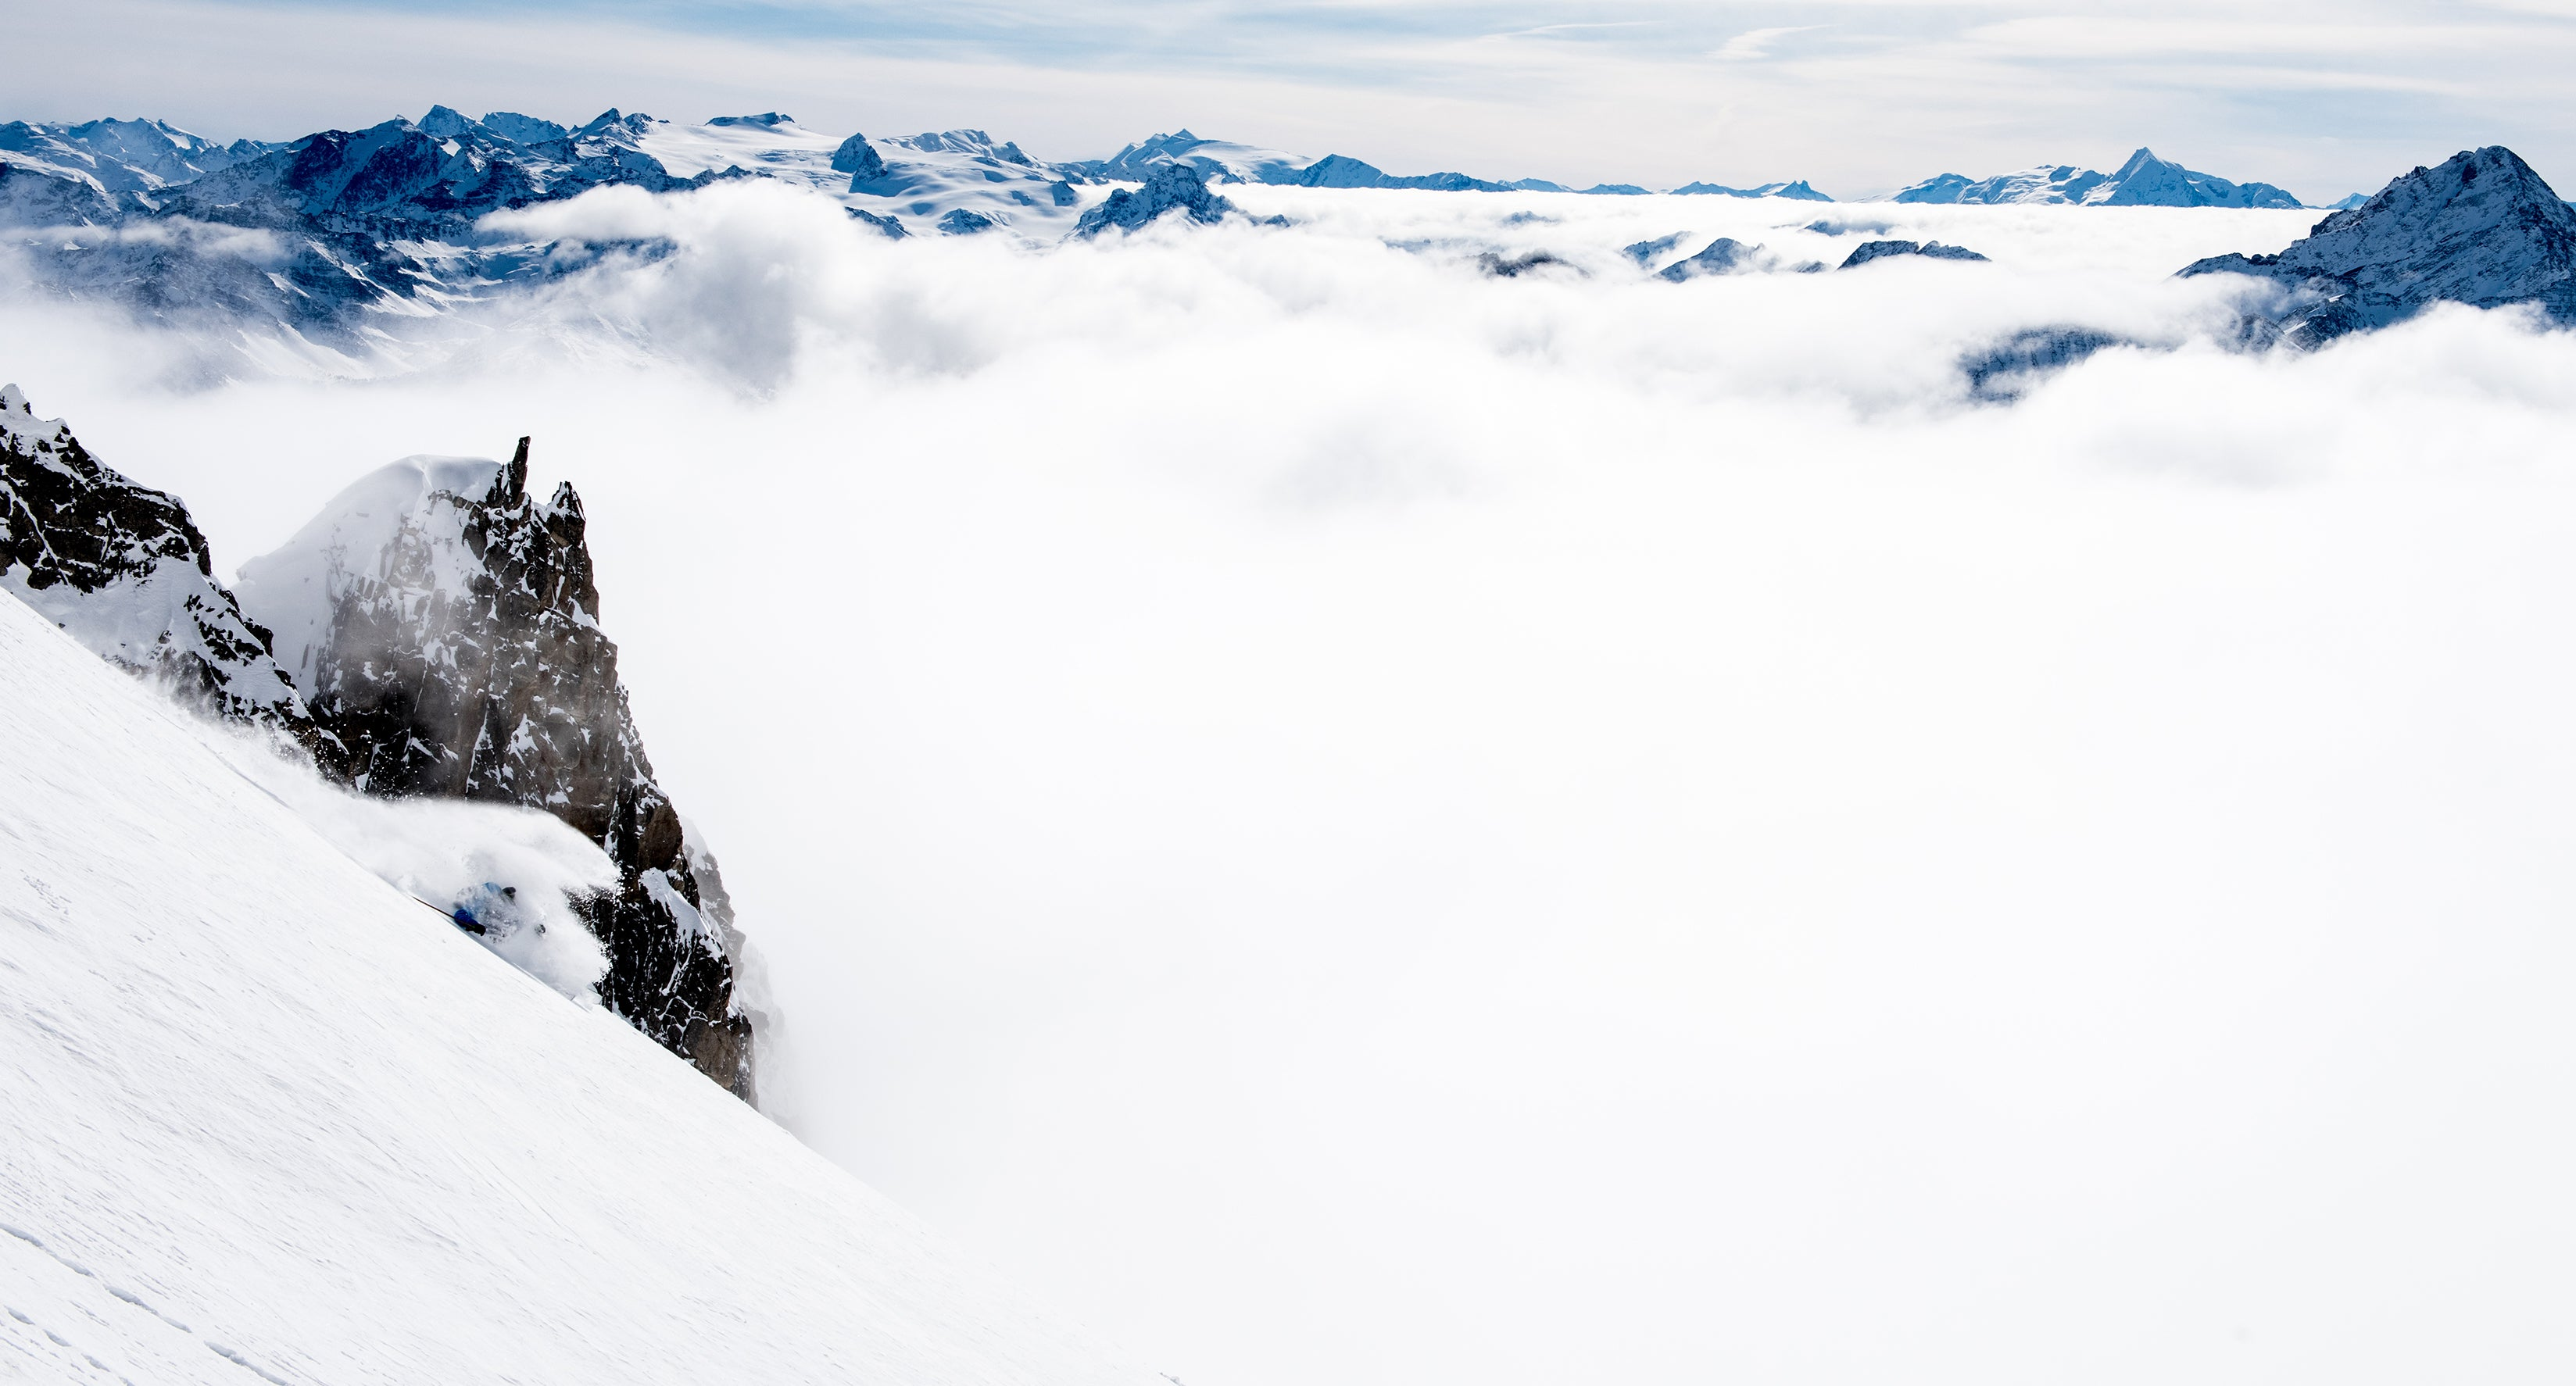 Skier turning above the cloud-covered Italian valley